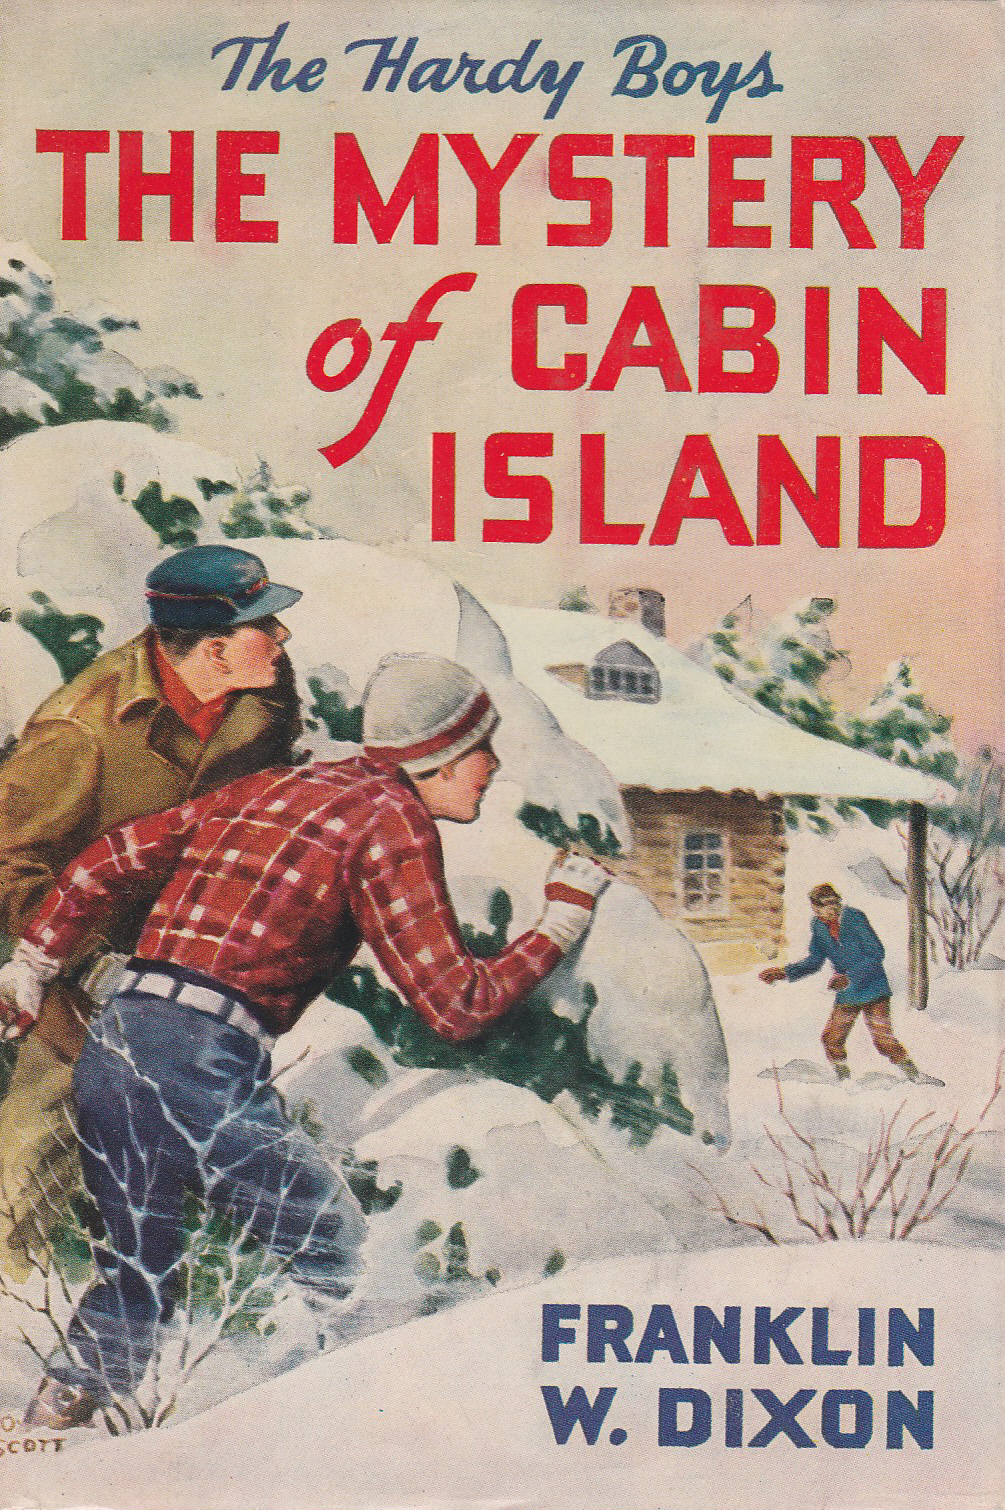 In The Original Text Of Hardy Boys #8, The Mystery Of Cabin Island, The  Hardy Boys Rent A Cabin On Cabin Island. They Plan To Spend The Christmas  Holidays ...